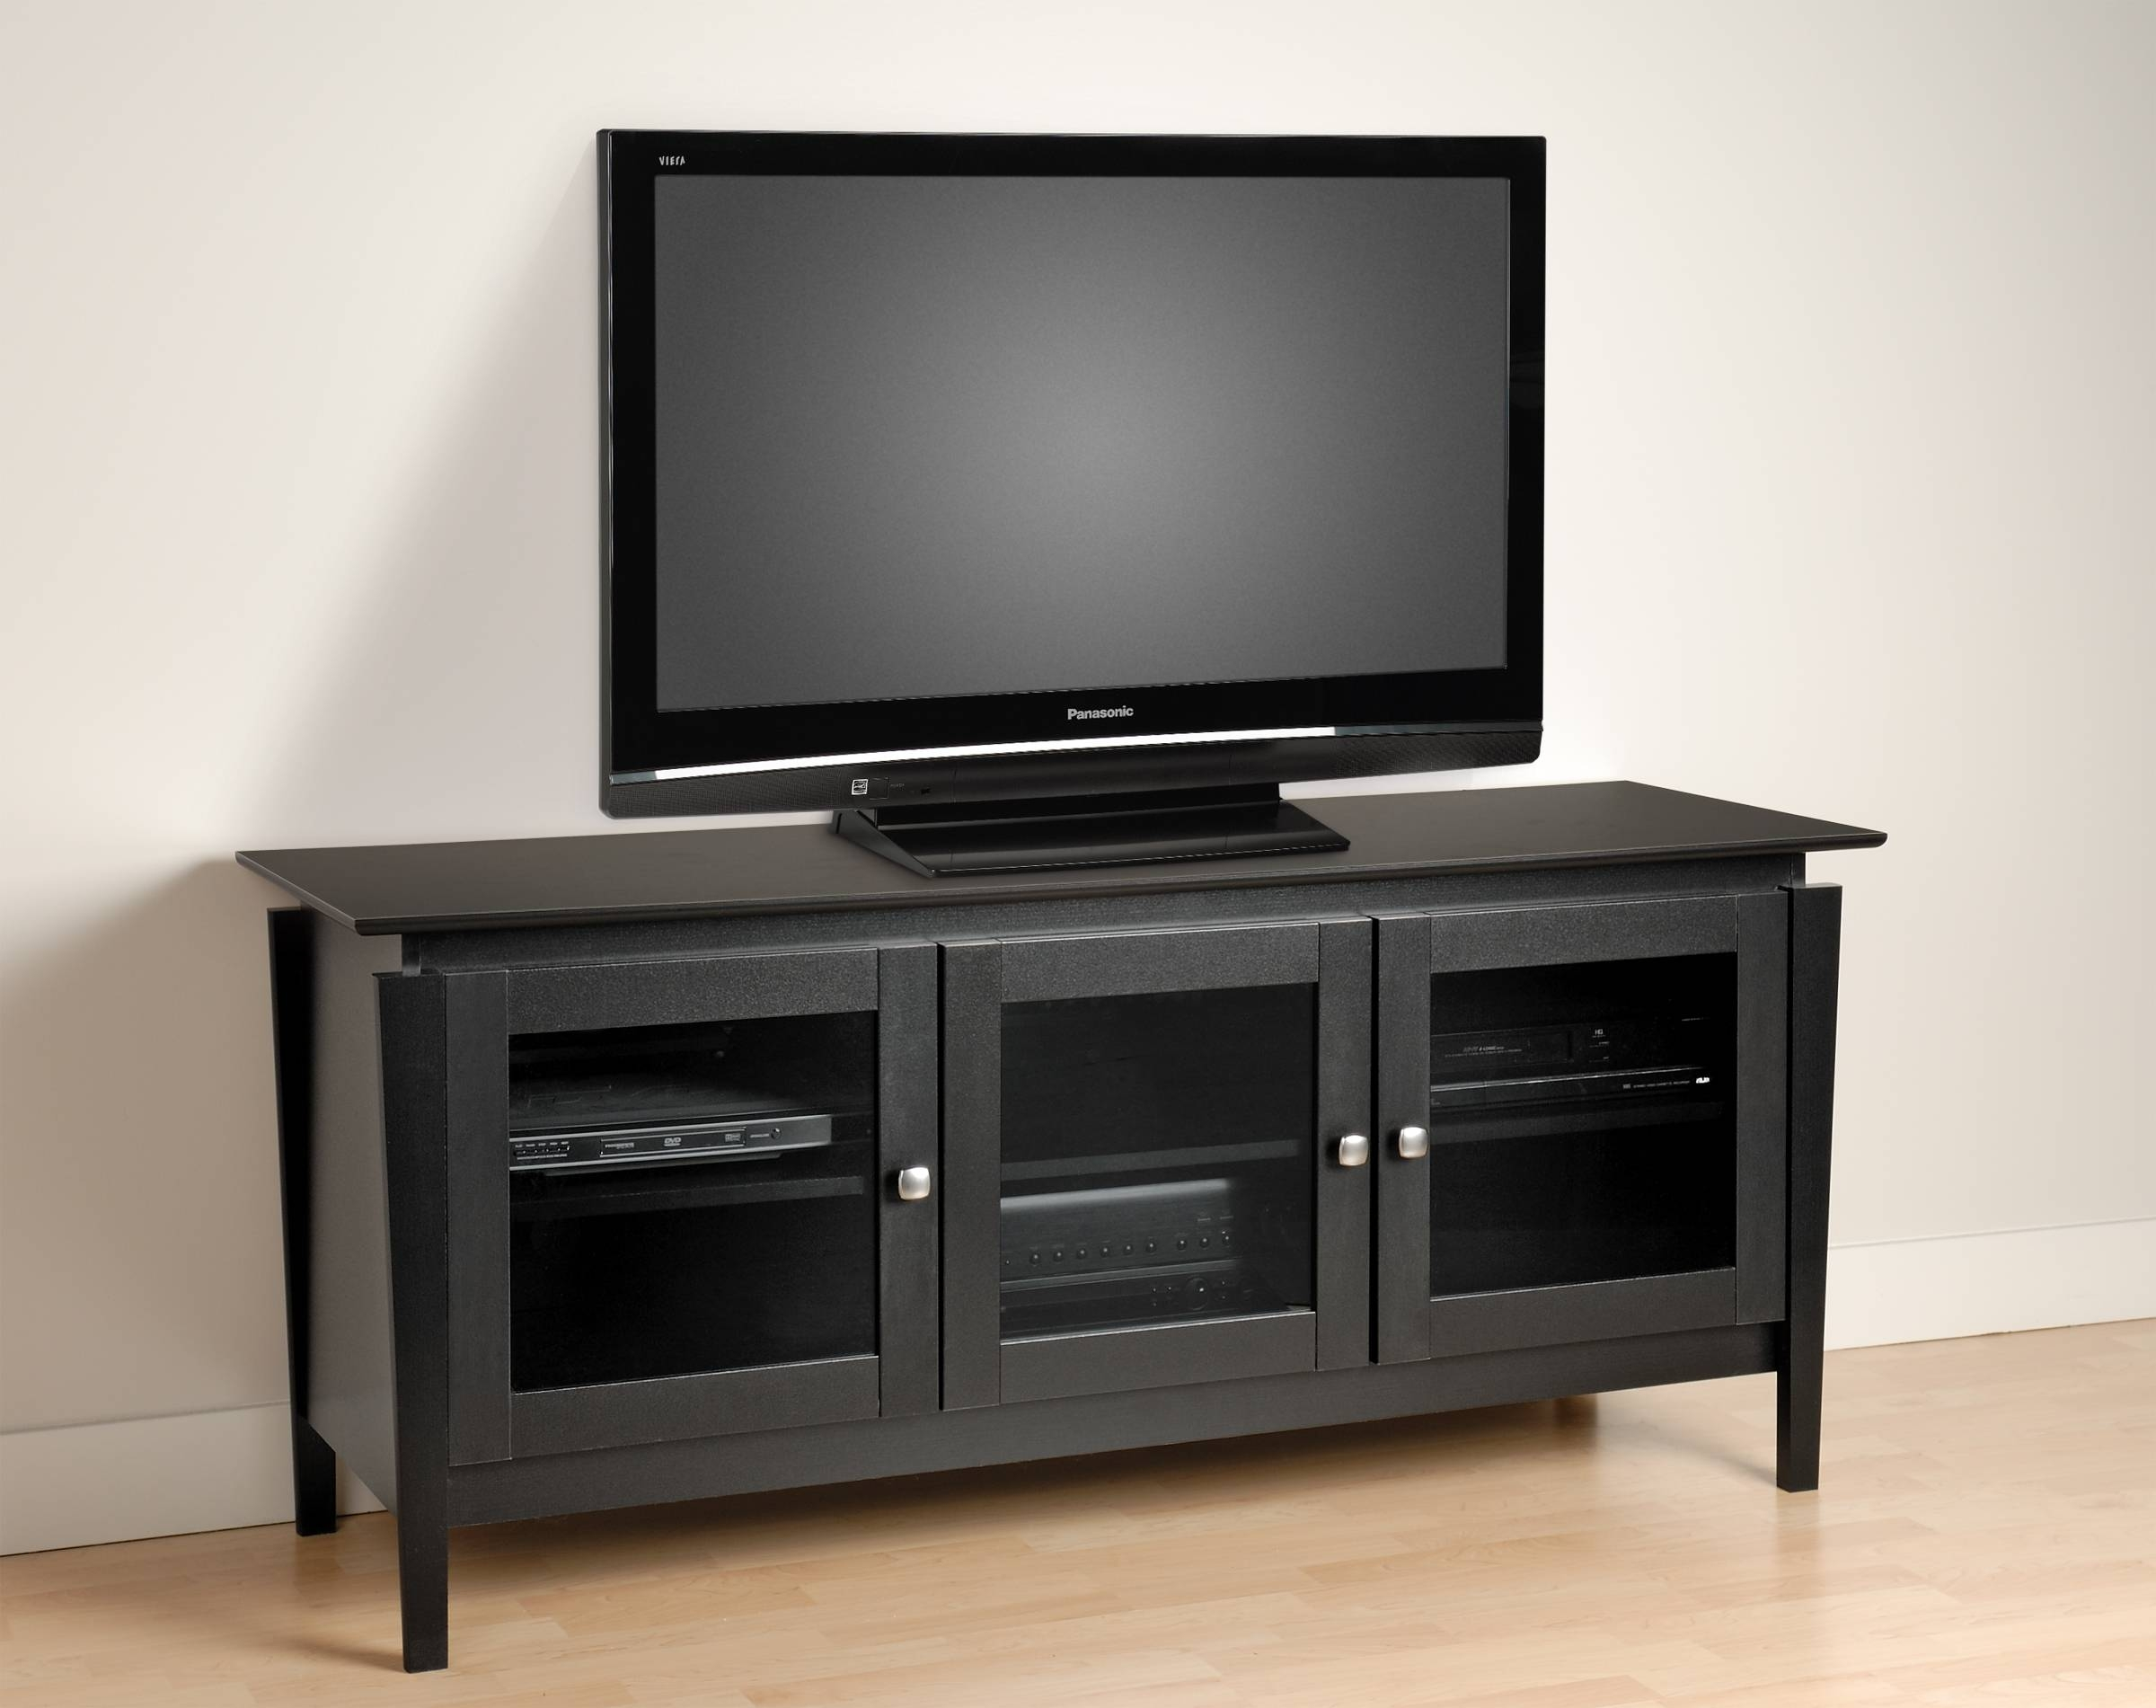 Black Wooden Tv Cabinets With Glass Doors And Steel Knob On Short regarding Wooden Tv Cabinets With Glass Doors (Image 3 of 15)